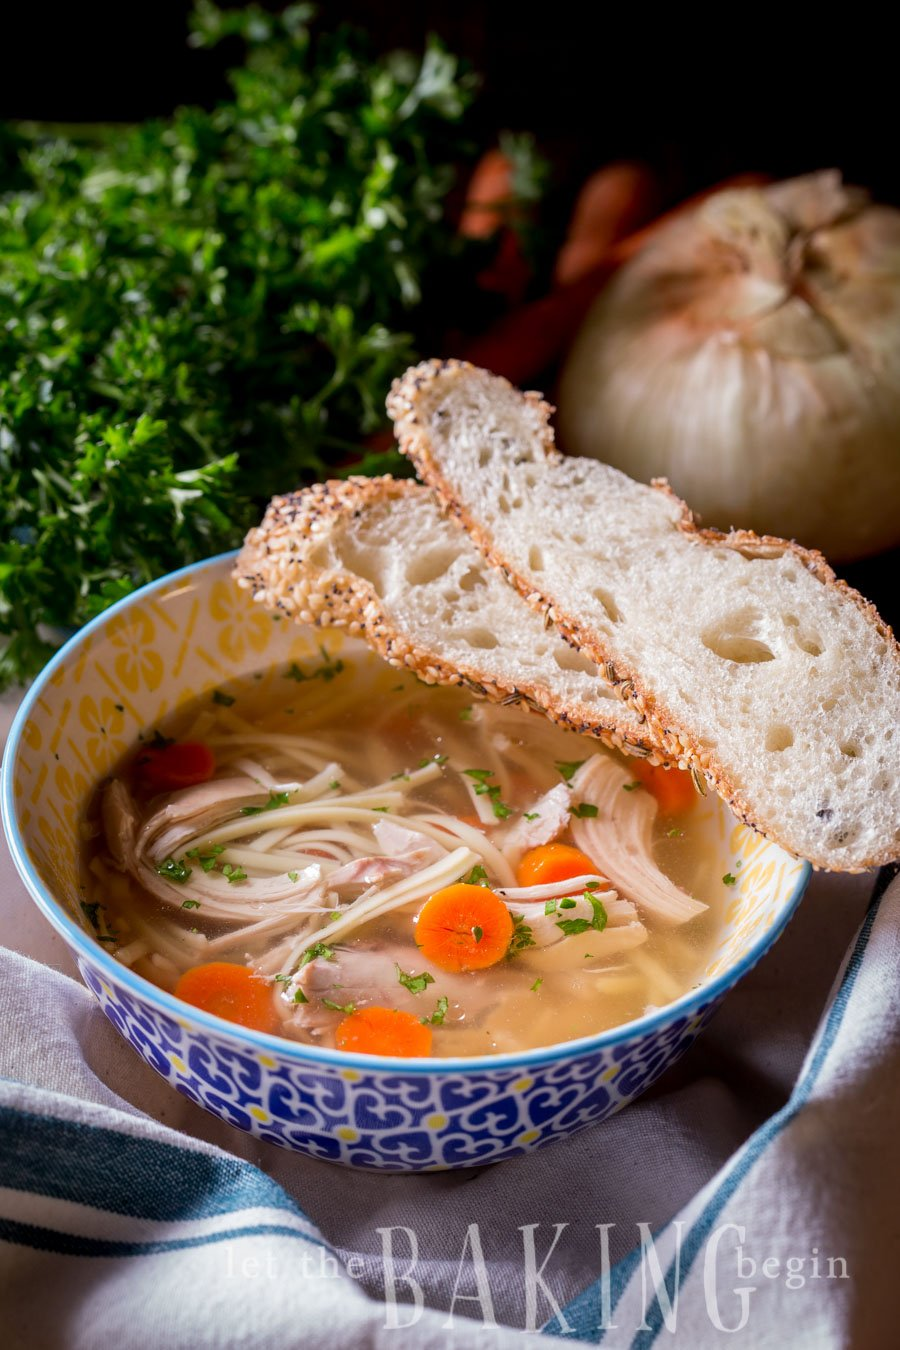 Instant pot chicken noodle soup in a bowl with freshly sliced bread.